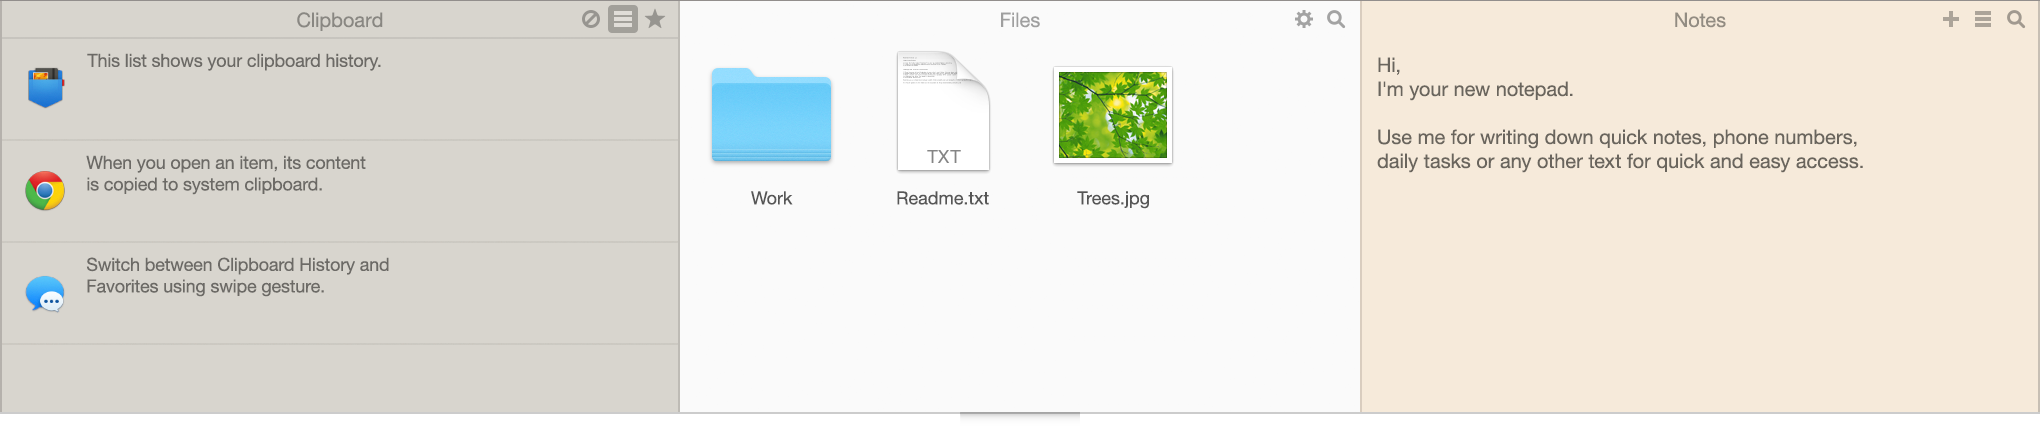 Unclutter - Files, Notes and Clipboard Manager for Mac